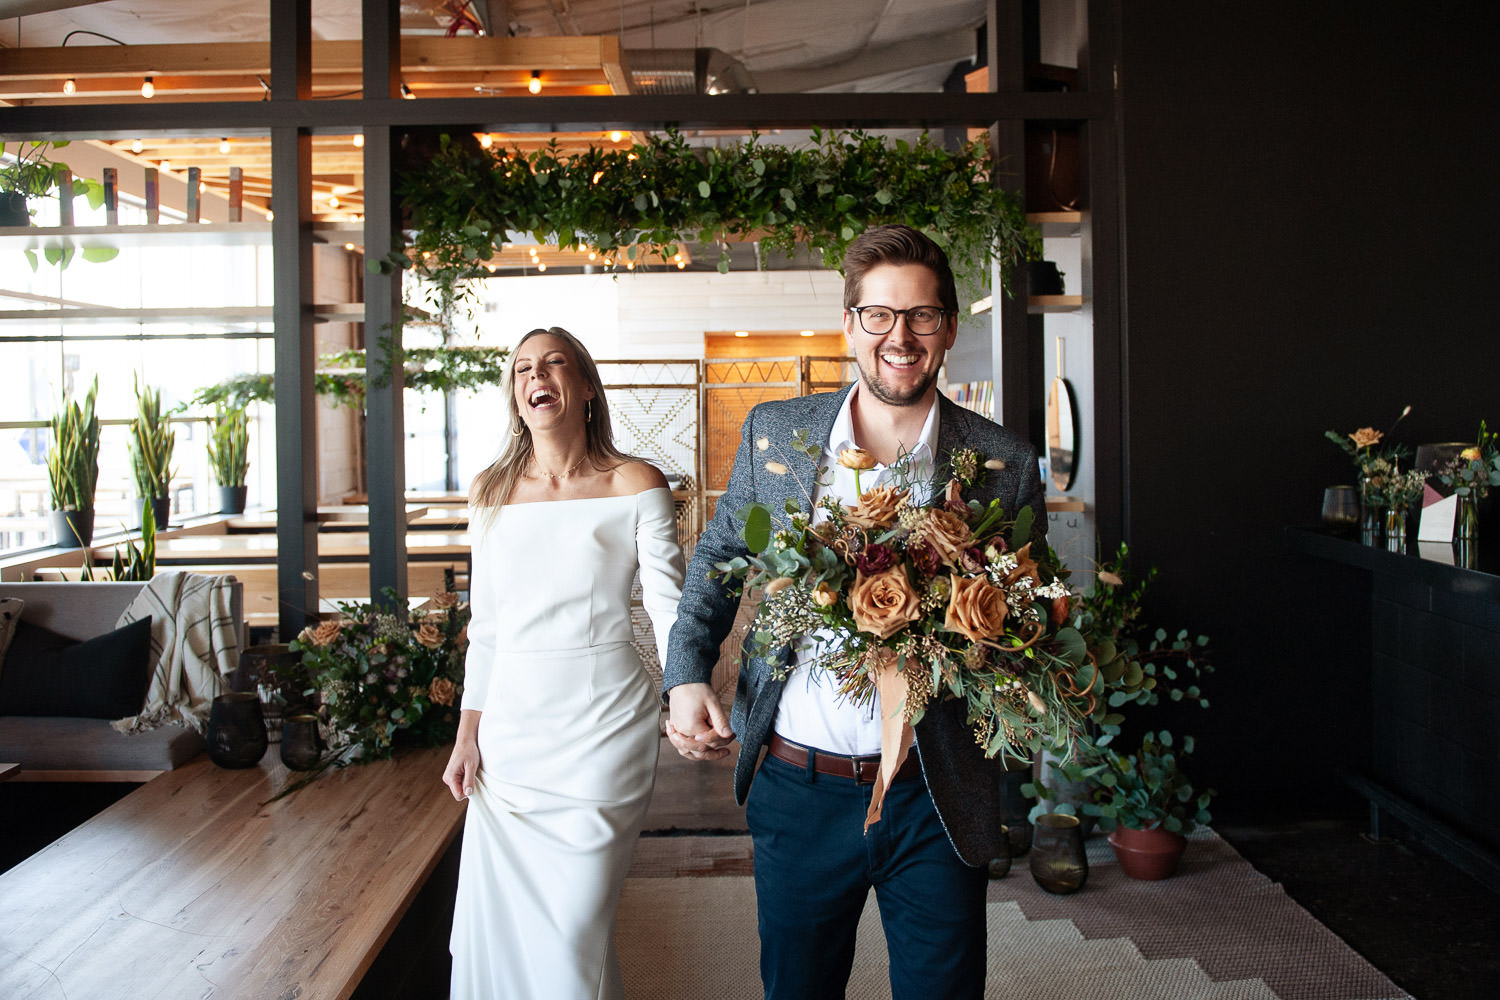 Just married after a Calgary micro wedding captured by Tara Whittaker Photography